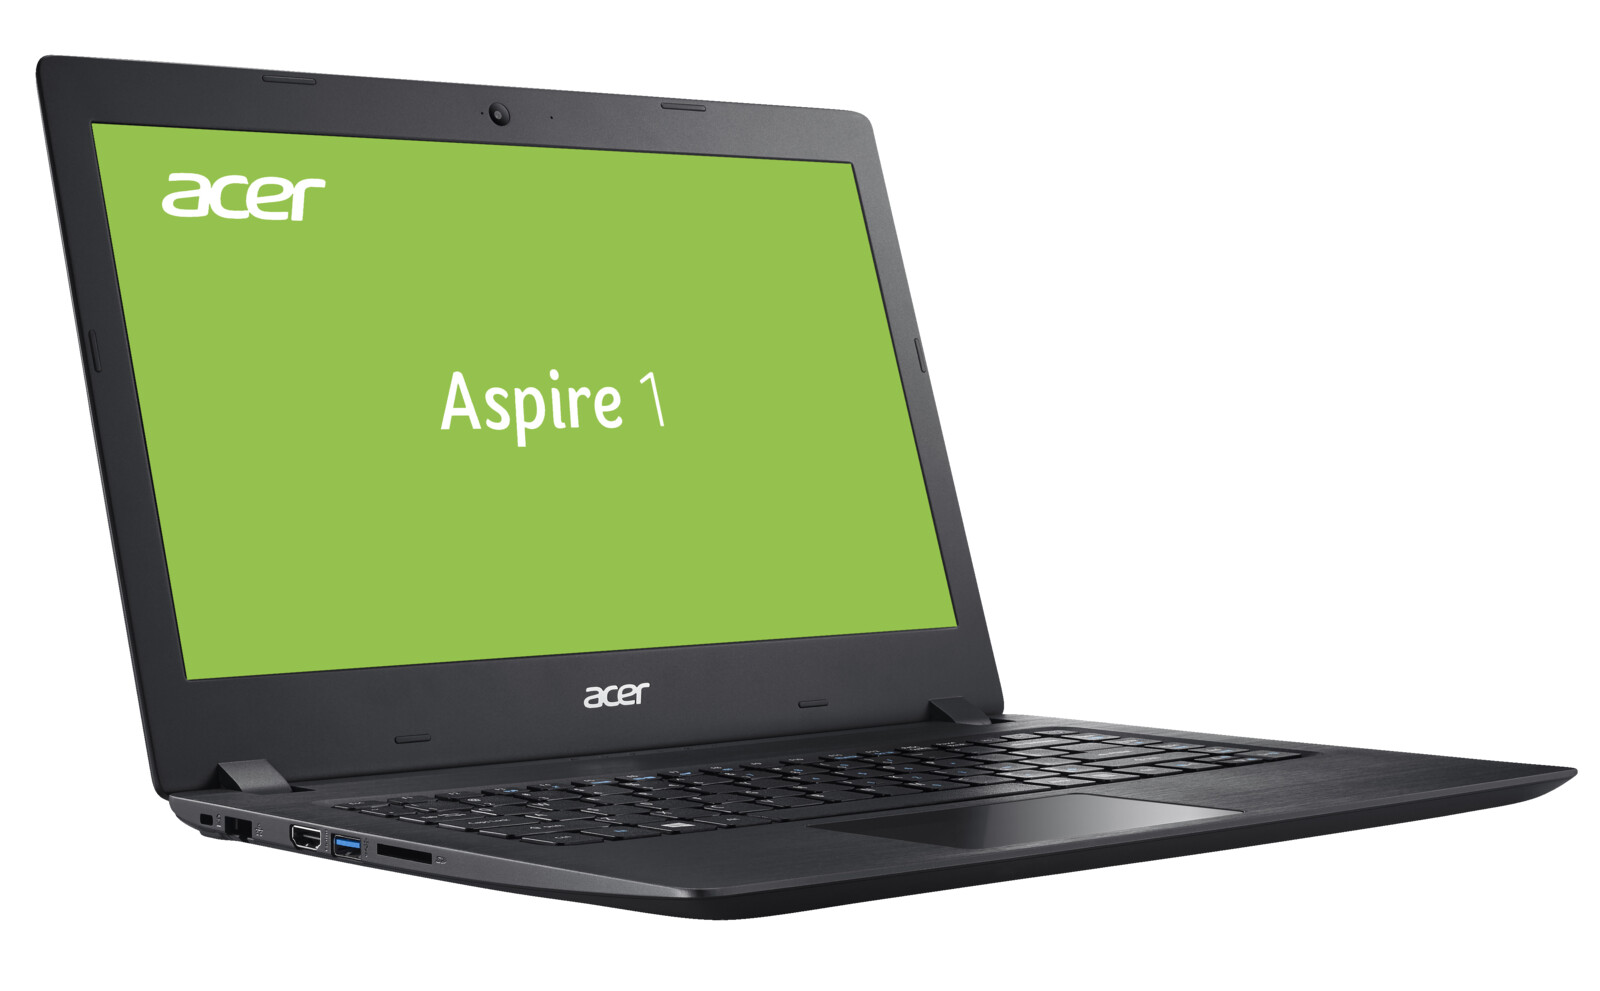 acer aspire 1 a114 31 p4j2 notebook mit 14 zoll display. Black Bedroom Furniture Sets. Home Design Ideas